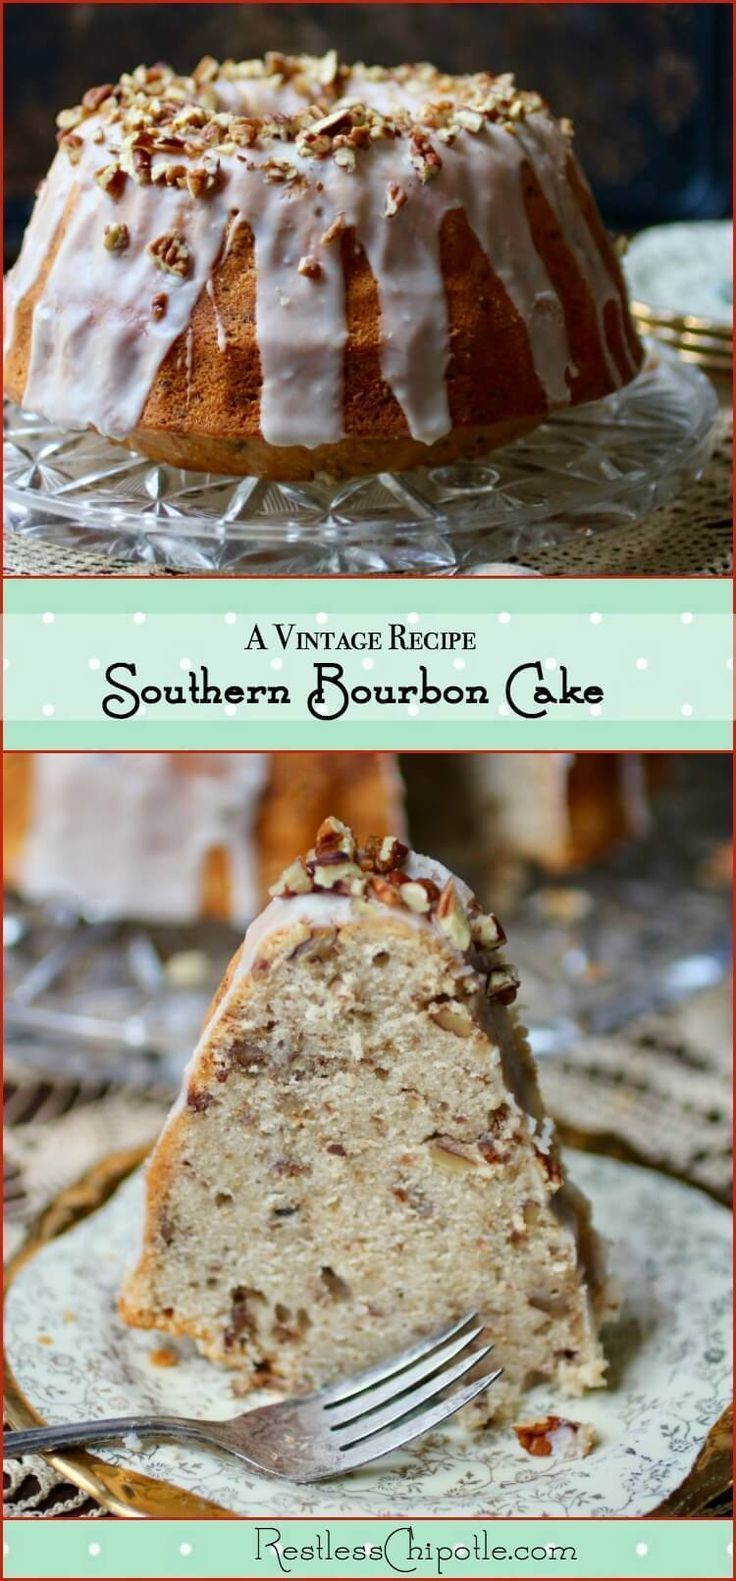 Homemade bourbon cake recipe from a vintage cookbook. This easy recipe is about as Southern as you can get! Pecans add a buttery richness to the moist bundt cake and top the sweet bourbon glaze. Soaked in bourbon, too!The baking technique is what makes it